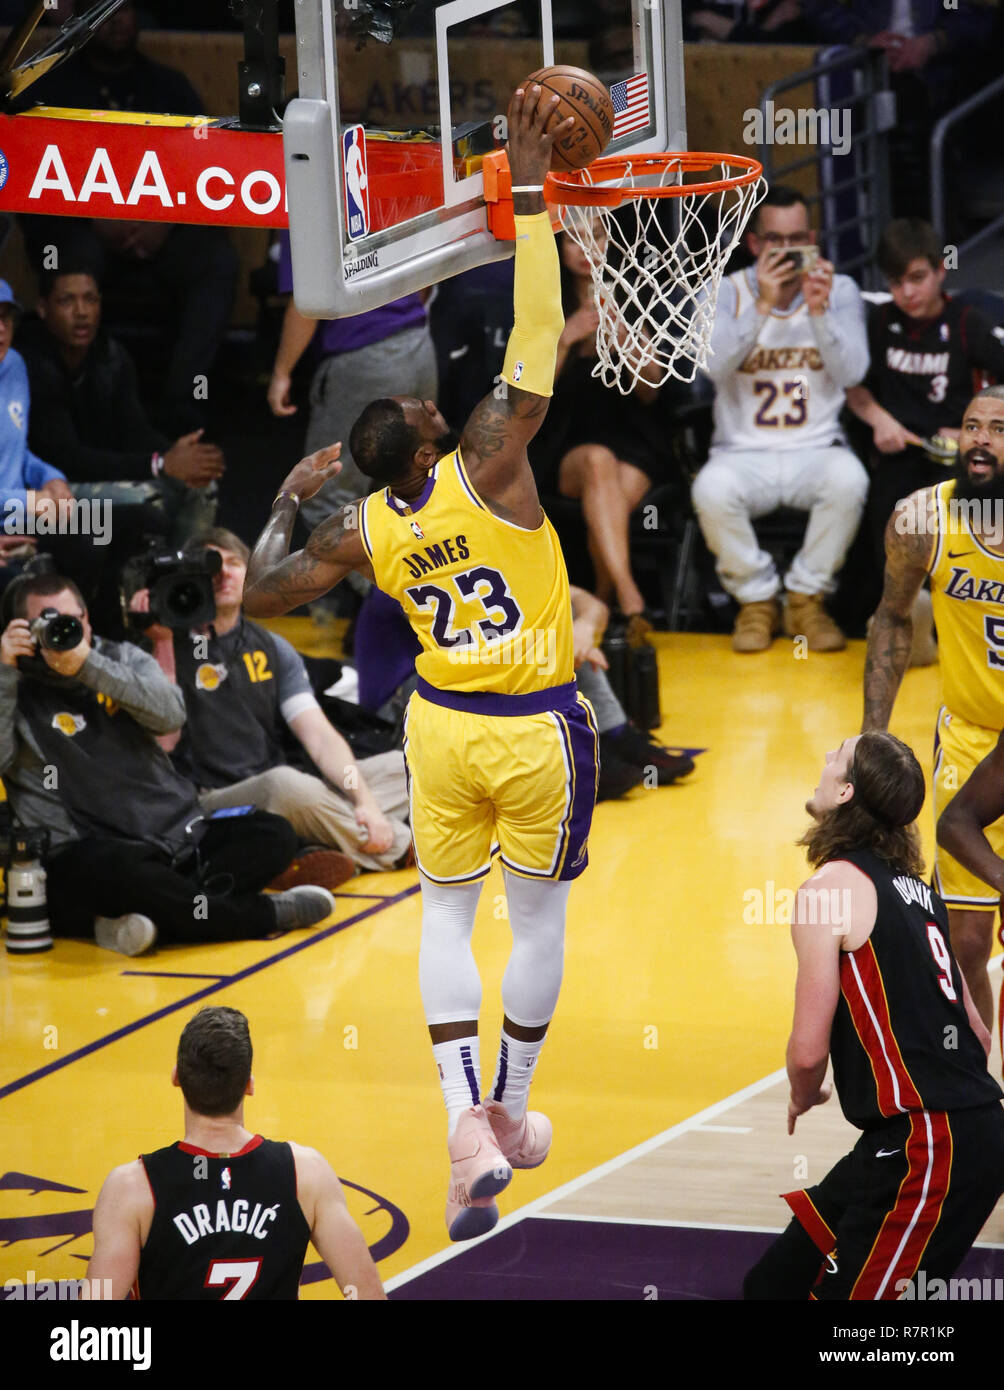 bbde941069f7 Los Angeles Lakers  LeBron James (23) dunks in an NBA basketball game  between Los Angeles Lakers and Miami Heat Monday